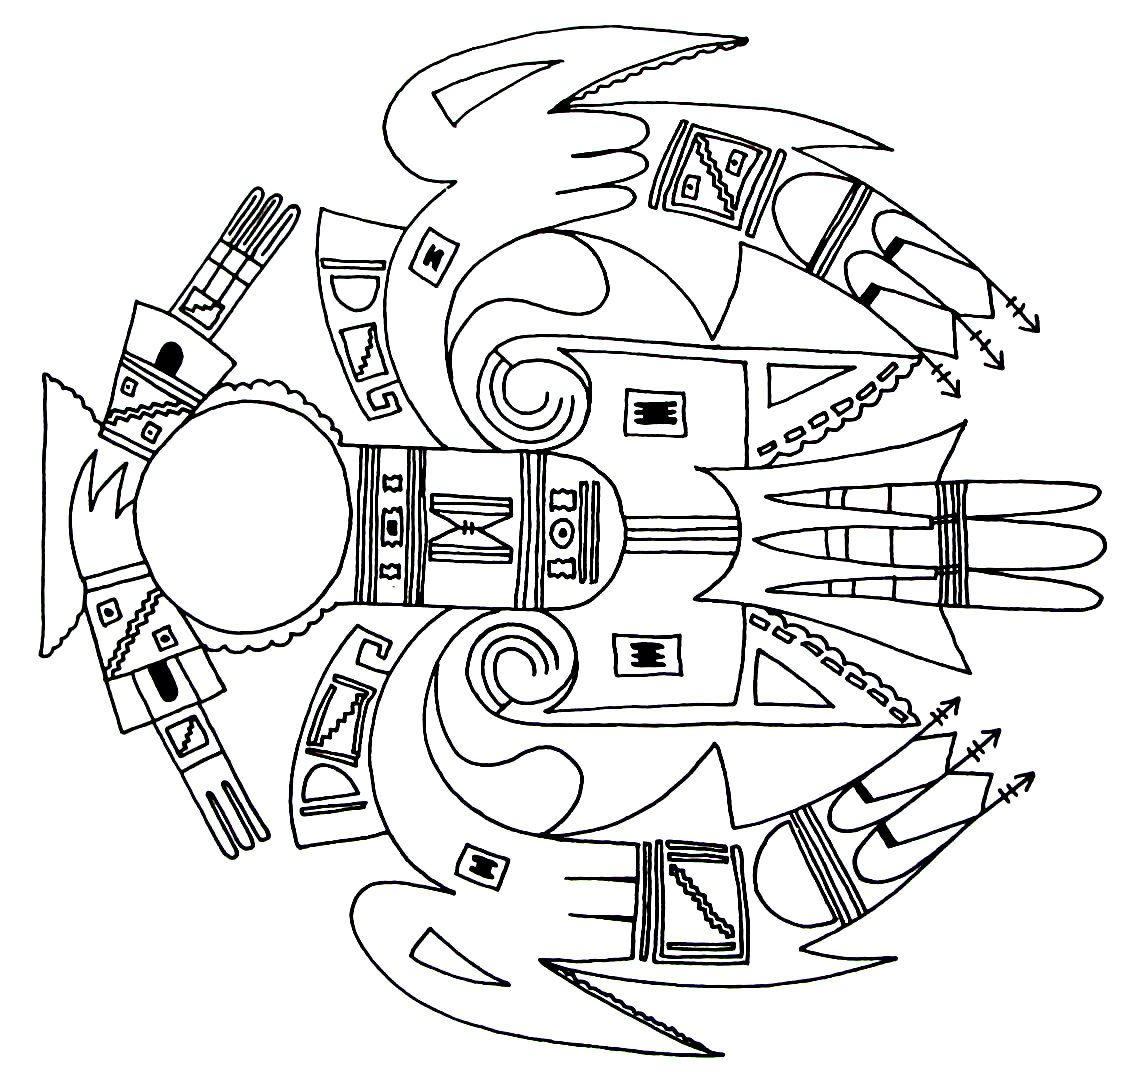 a thunderbird with cloud and arrow symbols from the nahane indians